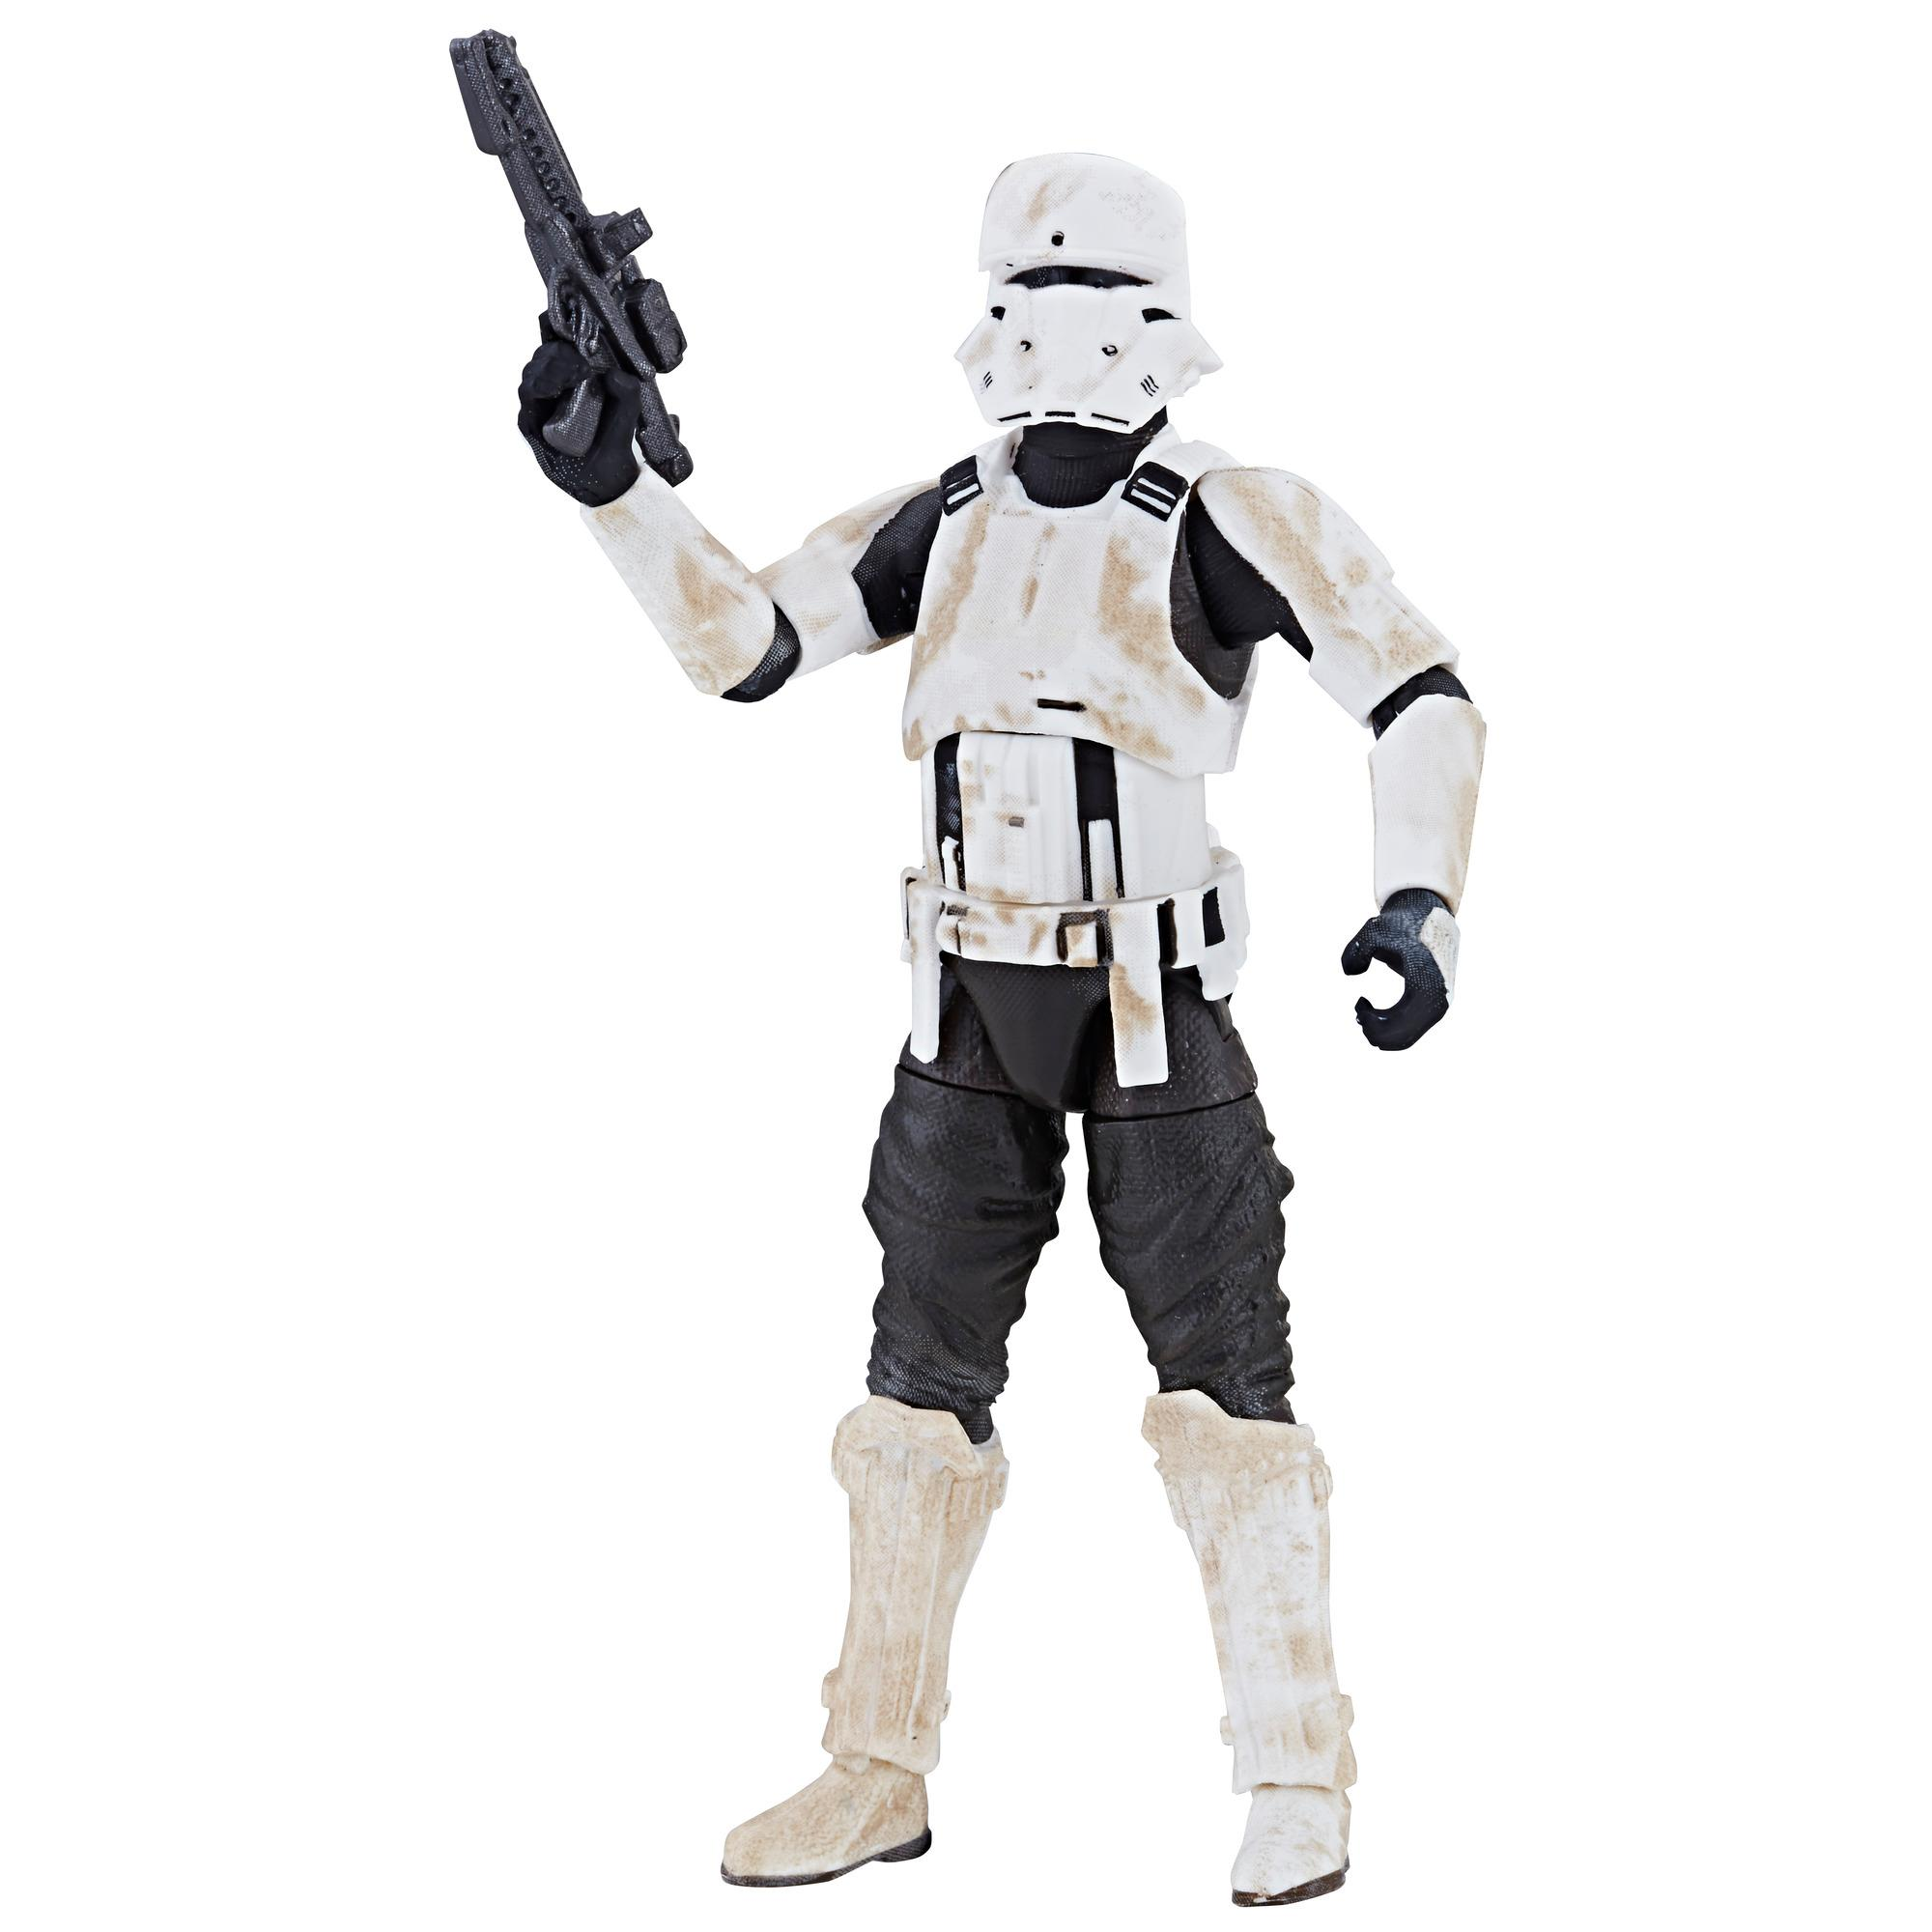 Star Wars The Vintage Collection Imperial Salt Tank Driver 3.75-inch Figure